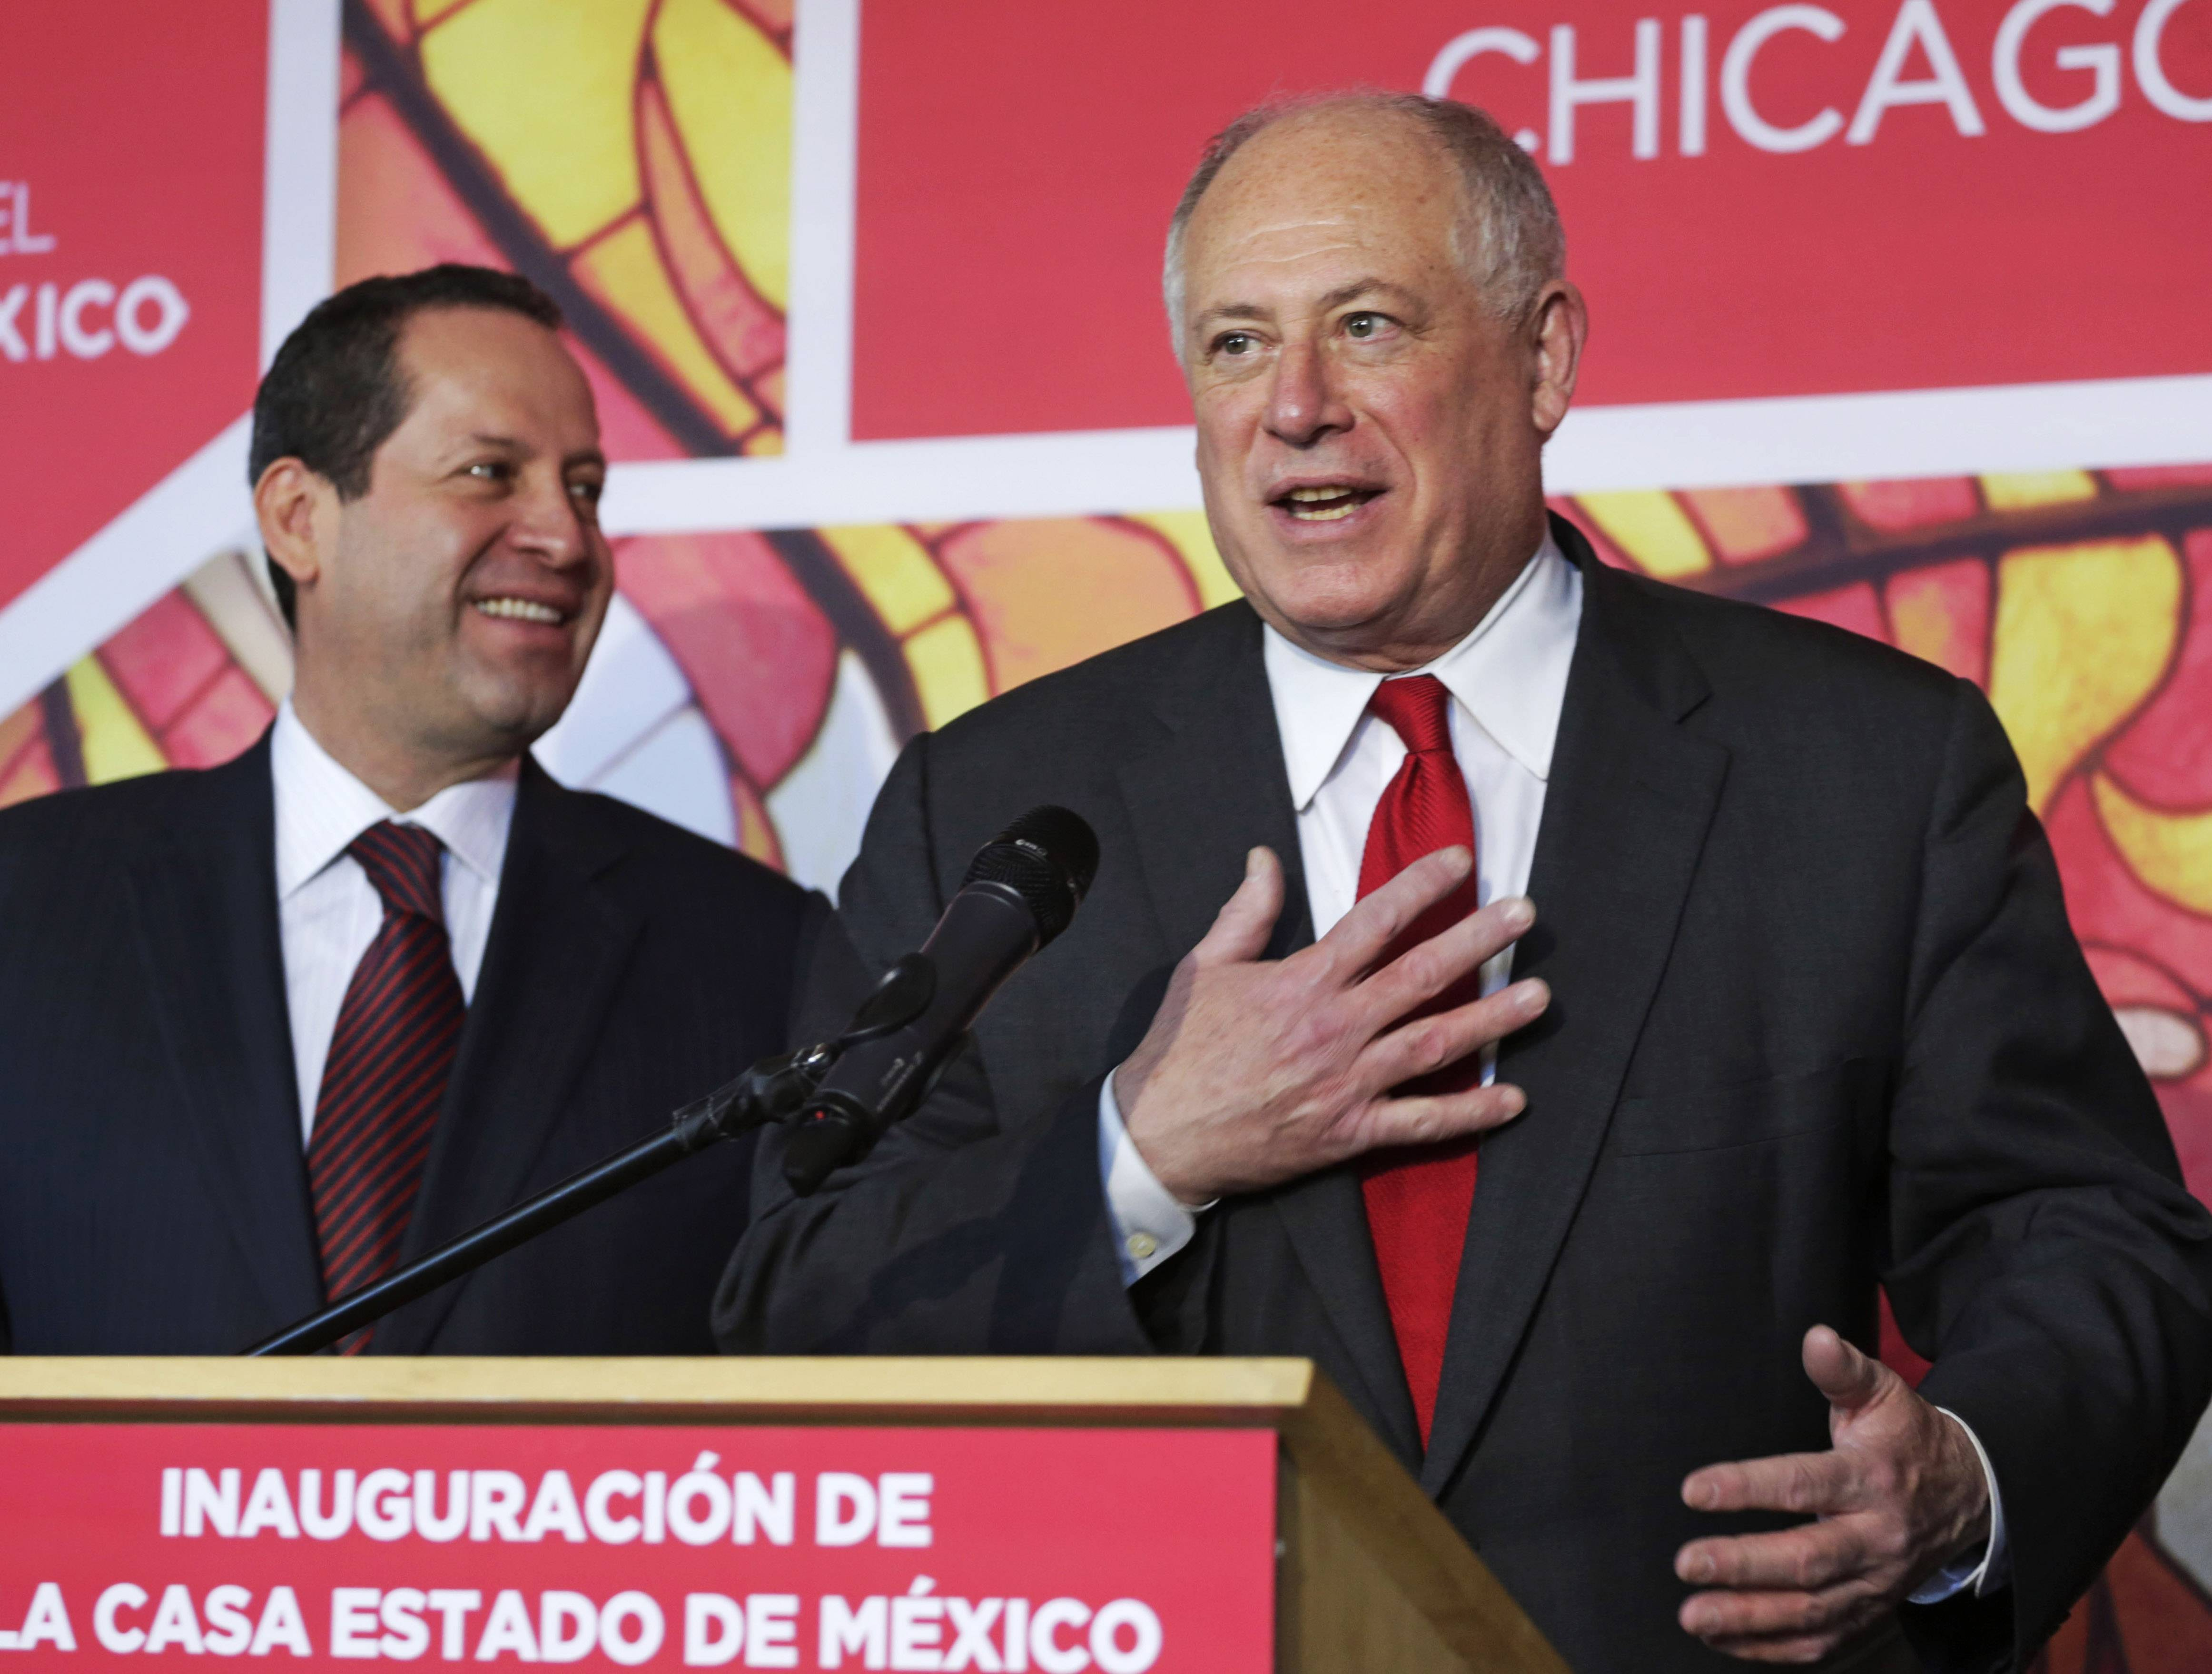 In this Jan. 23 photo, Gov. Pat Quinn delivers the State of the State address at Capitol in Springfield, Ill. With the Illinois primary election less than a week away on March 18, Quinn is the target of Republican attack ads, has a little-known outspoken primary challenger and could face a tough road to November, but there's little evidence of his re-election bid.